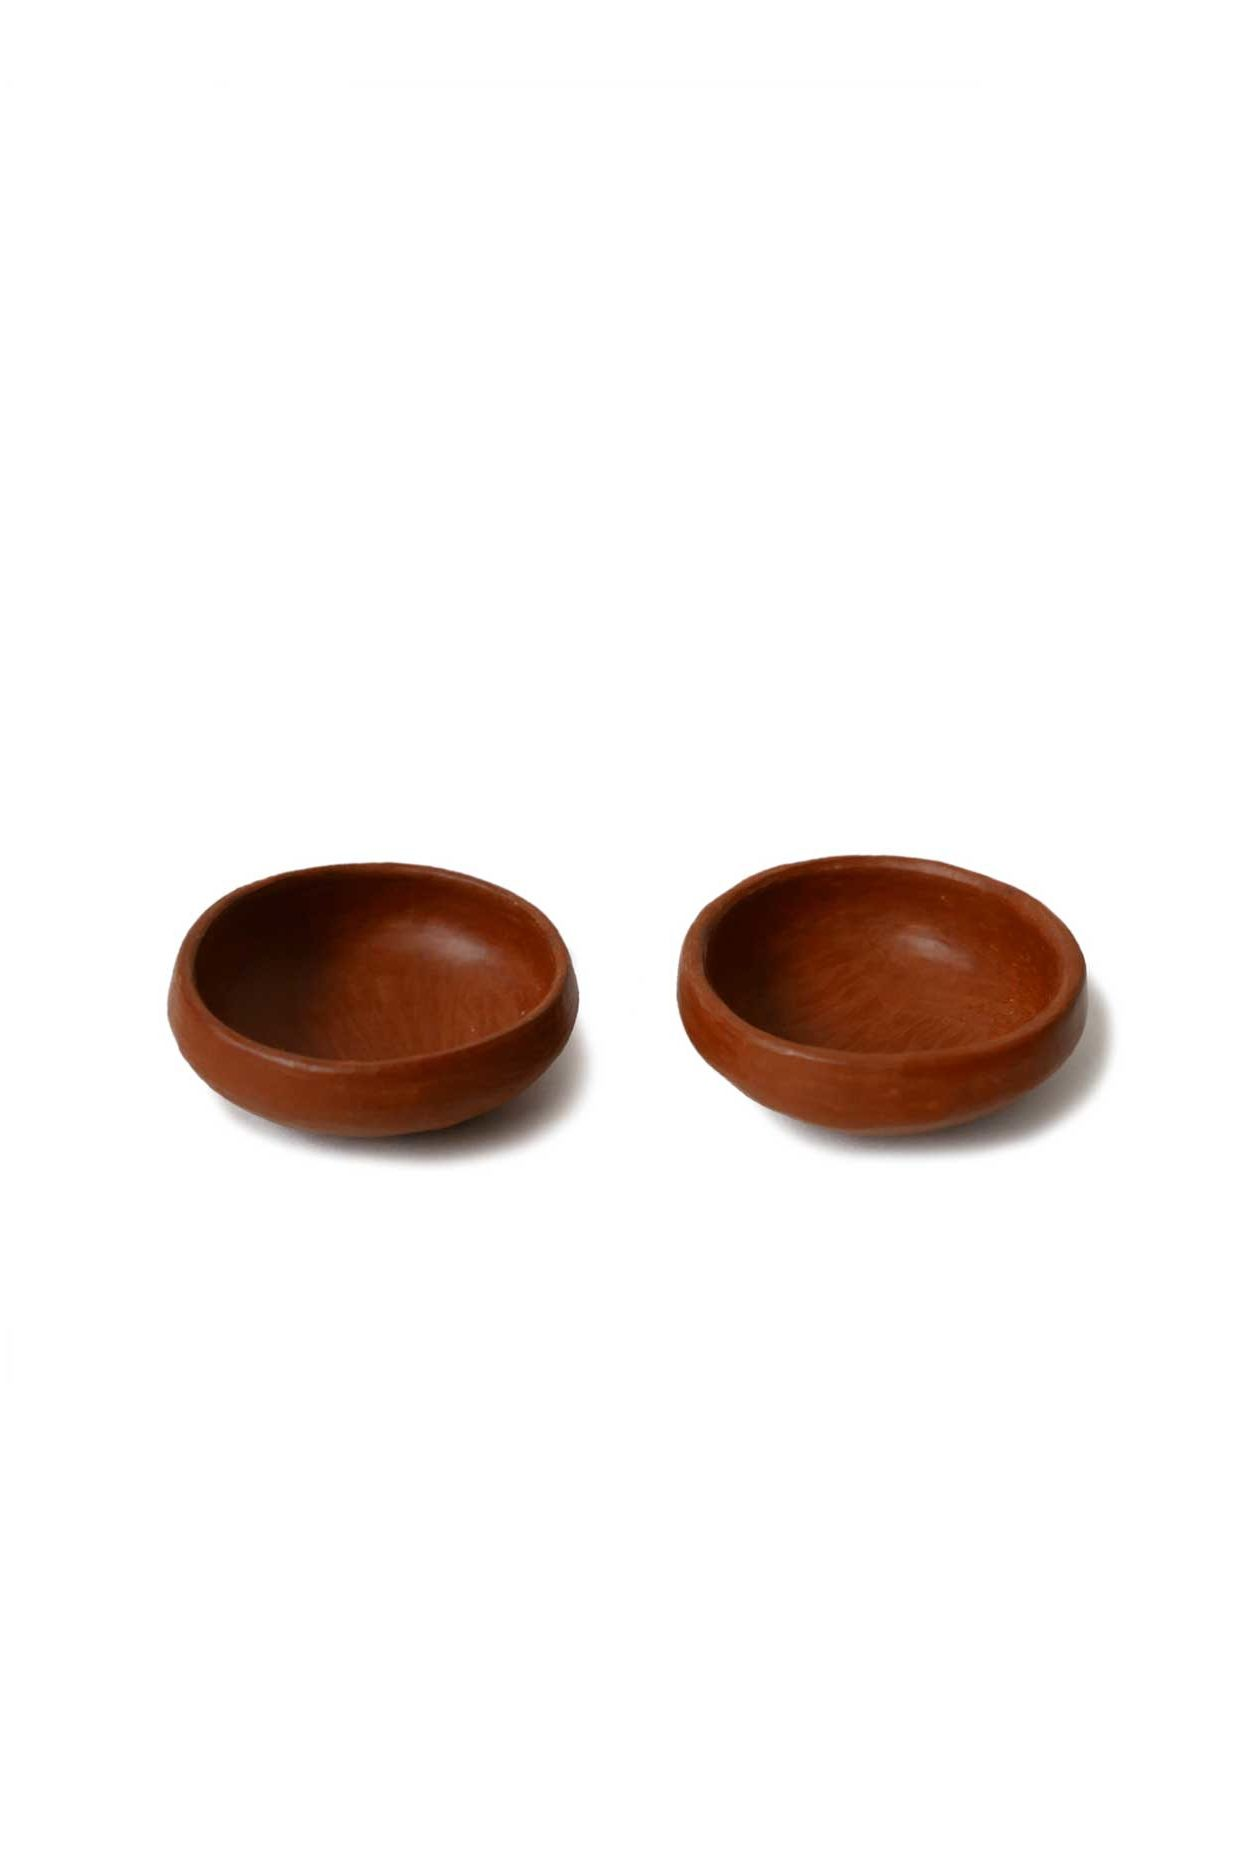 Mexican Barro Rojo Ceramic Salt and Pepper Saucers - www.nidocollective.com #barrorojo #mexicanceramics #redclaypottery #terracottapottery